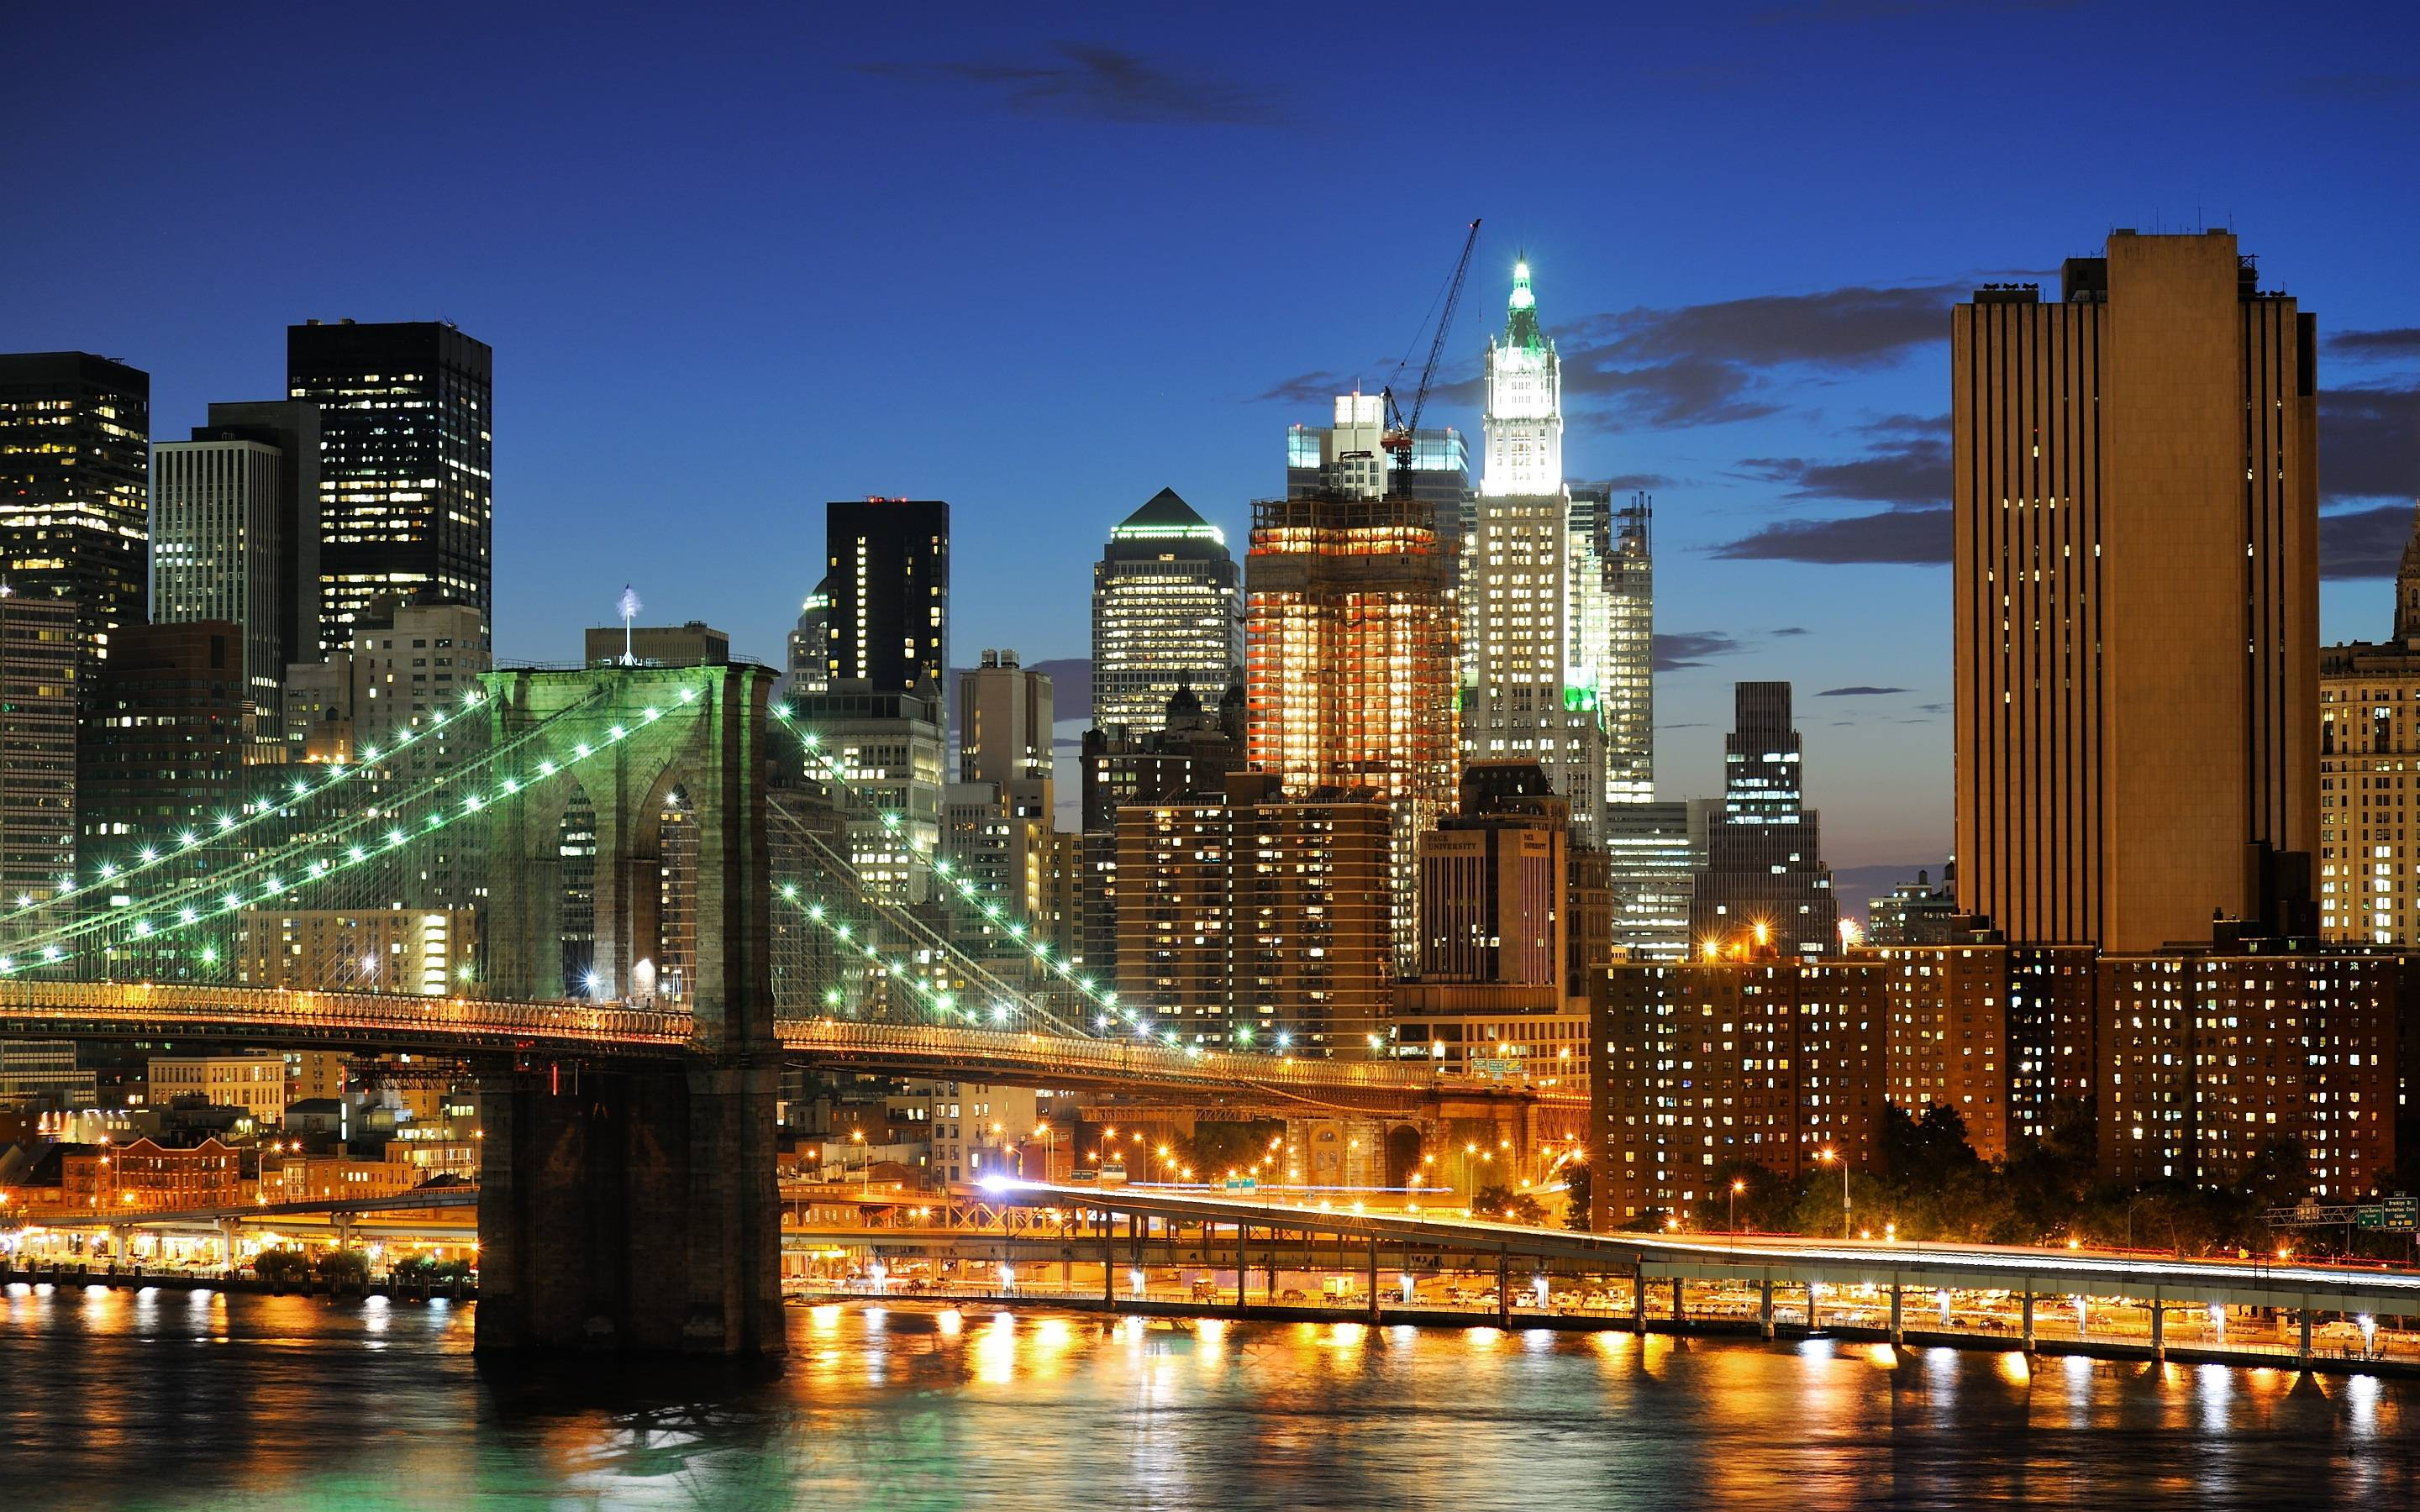 New-York-City-Wallpaper-18009